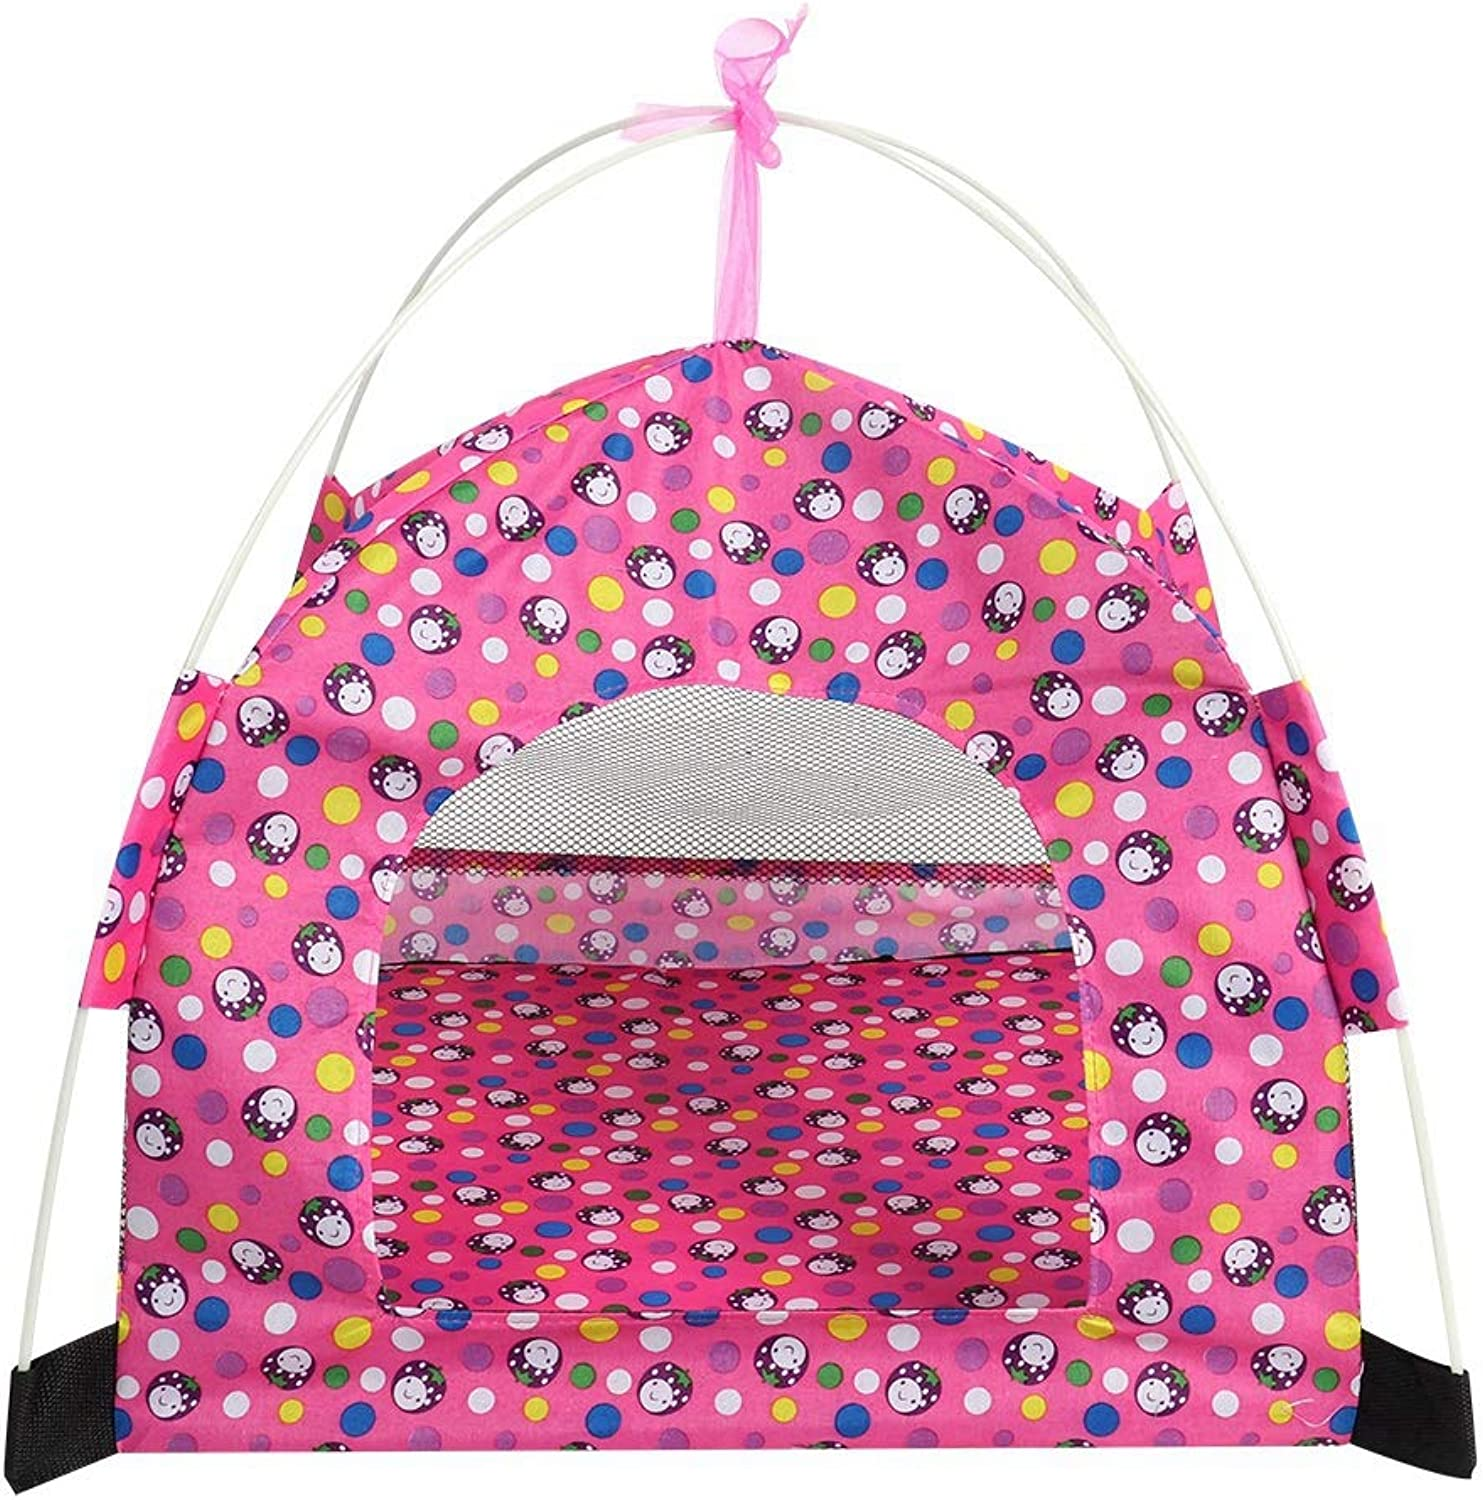 Pet Tent Dog Summer Tent Breathable Pet Tent Breathable Sun Shelter House for Dog Puppy Portable Pet Tent Outdoor Foldable Pet Dog Cat Puppy Playpen(Pink)